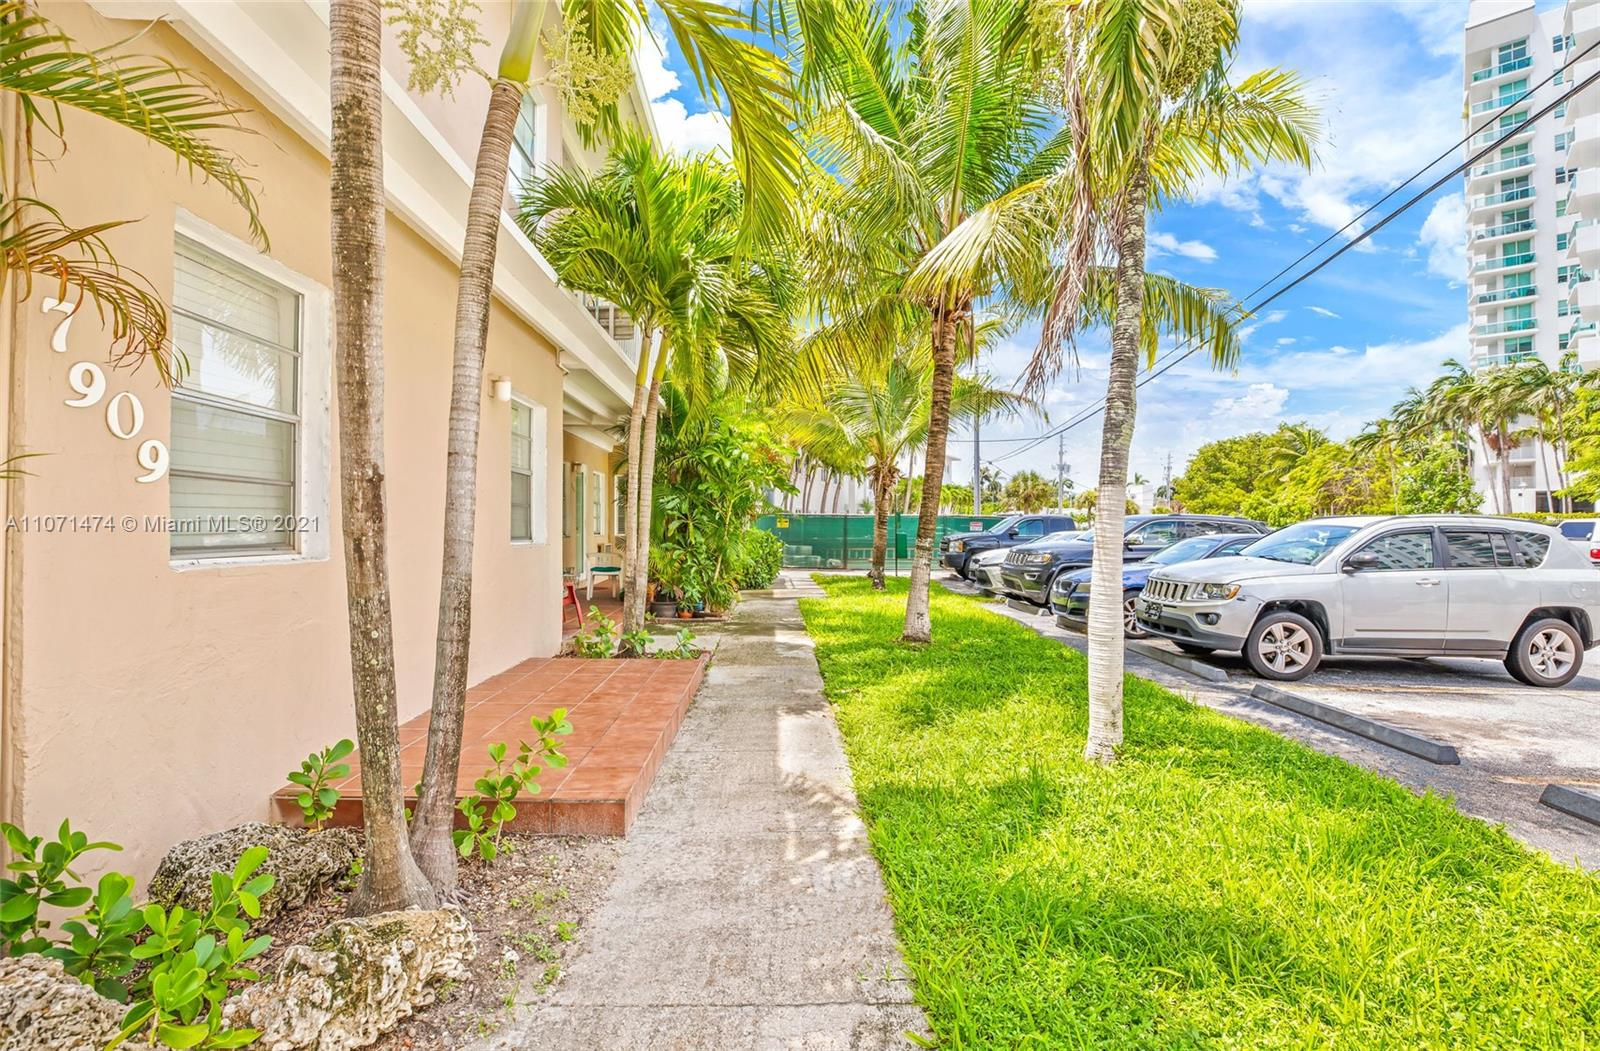 7909  East Dr #112 For Sale A11071474, FL